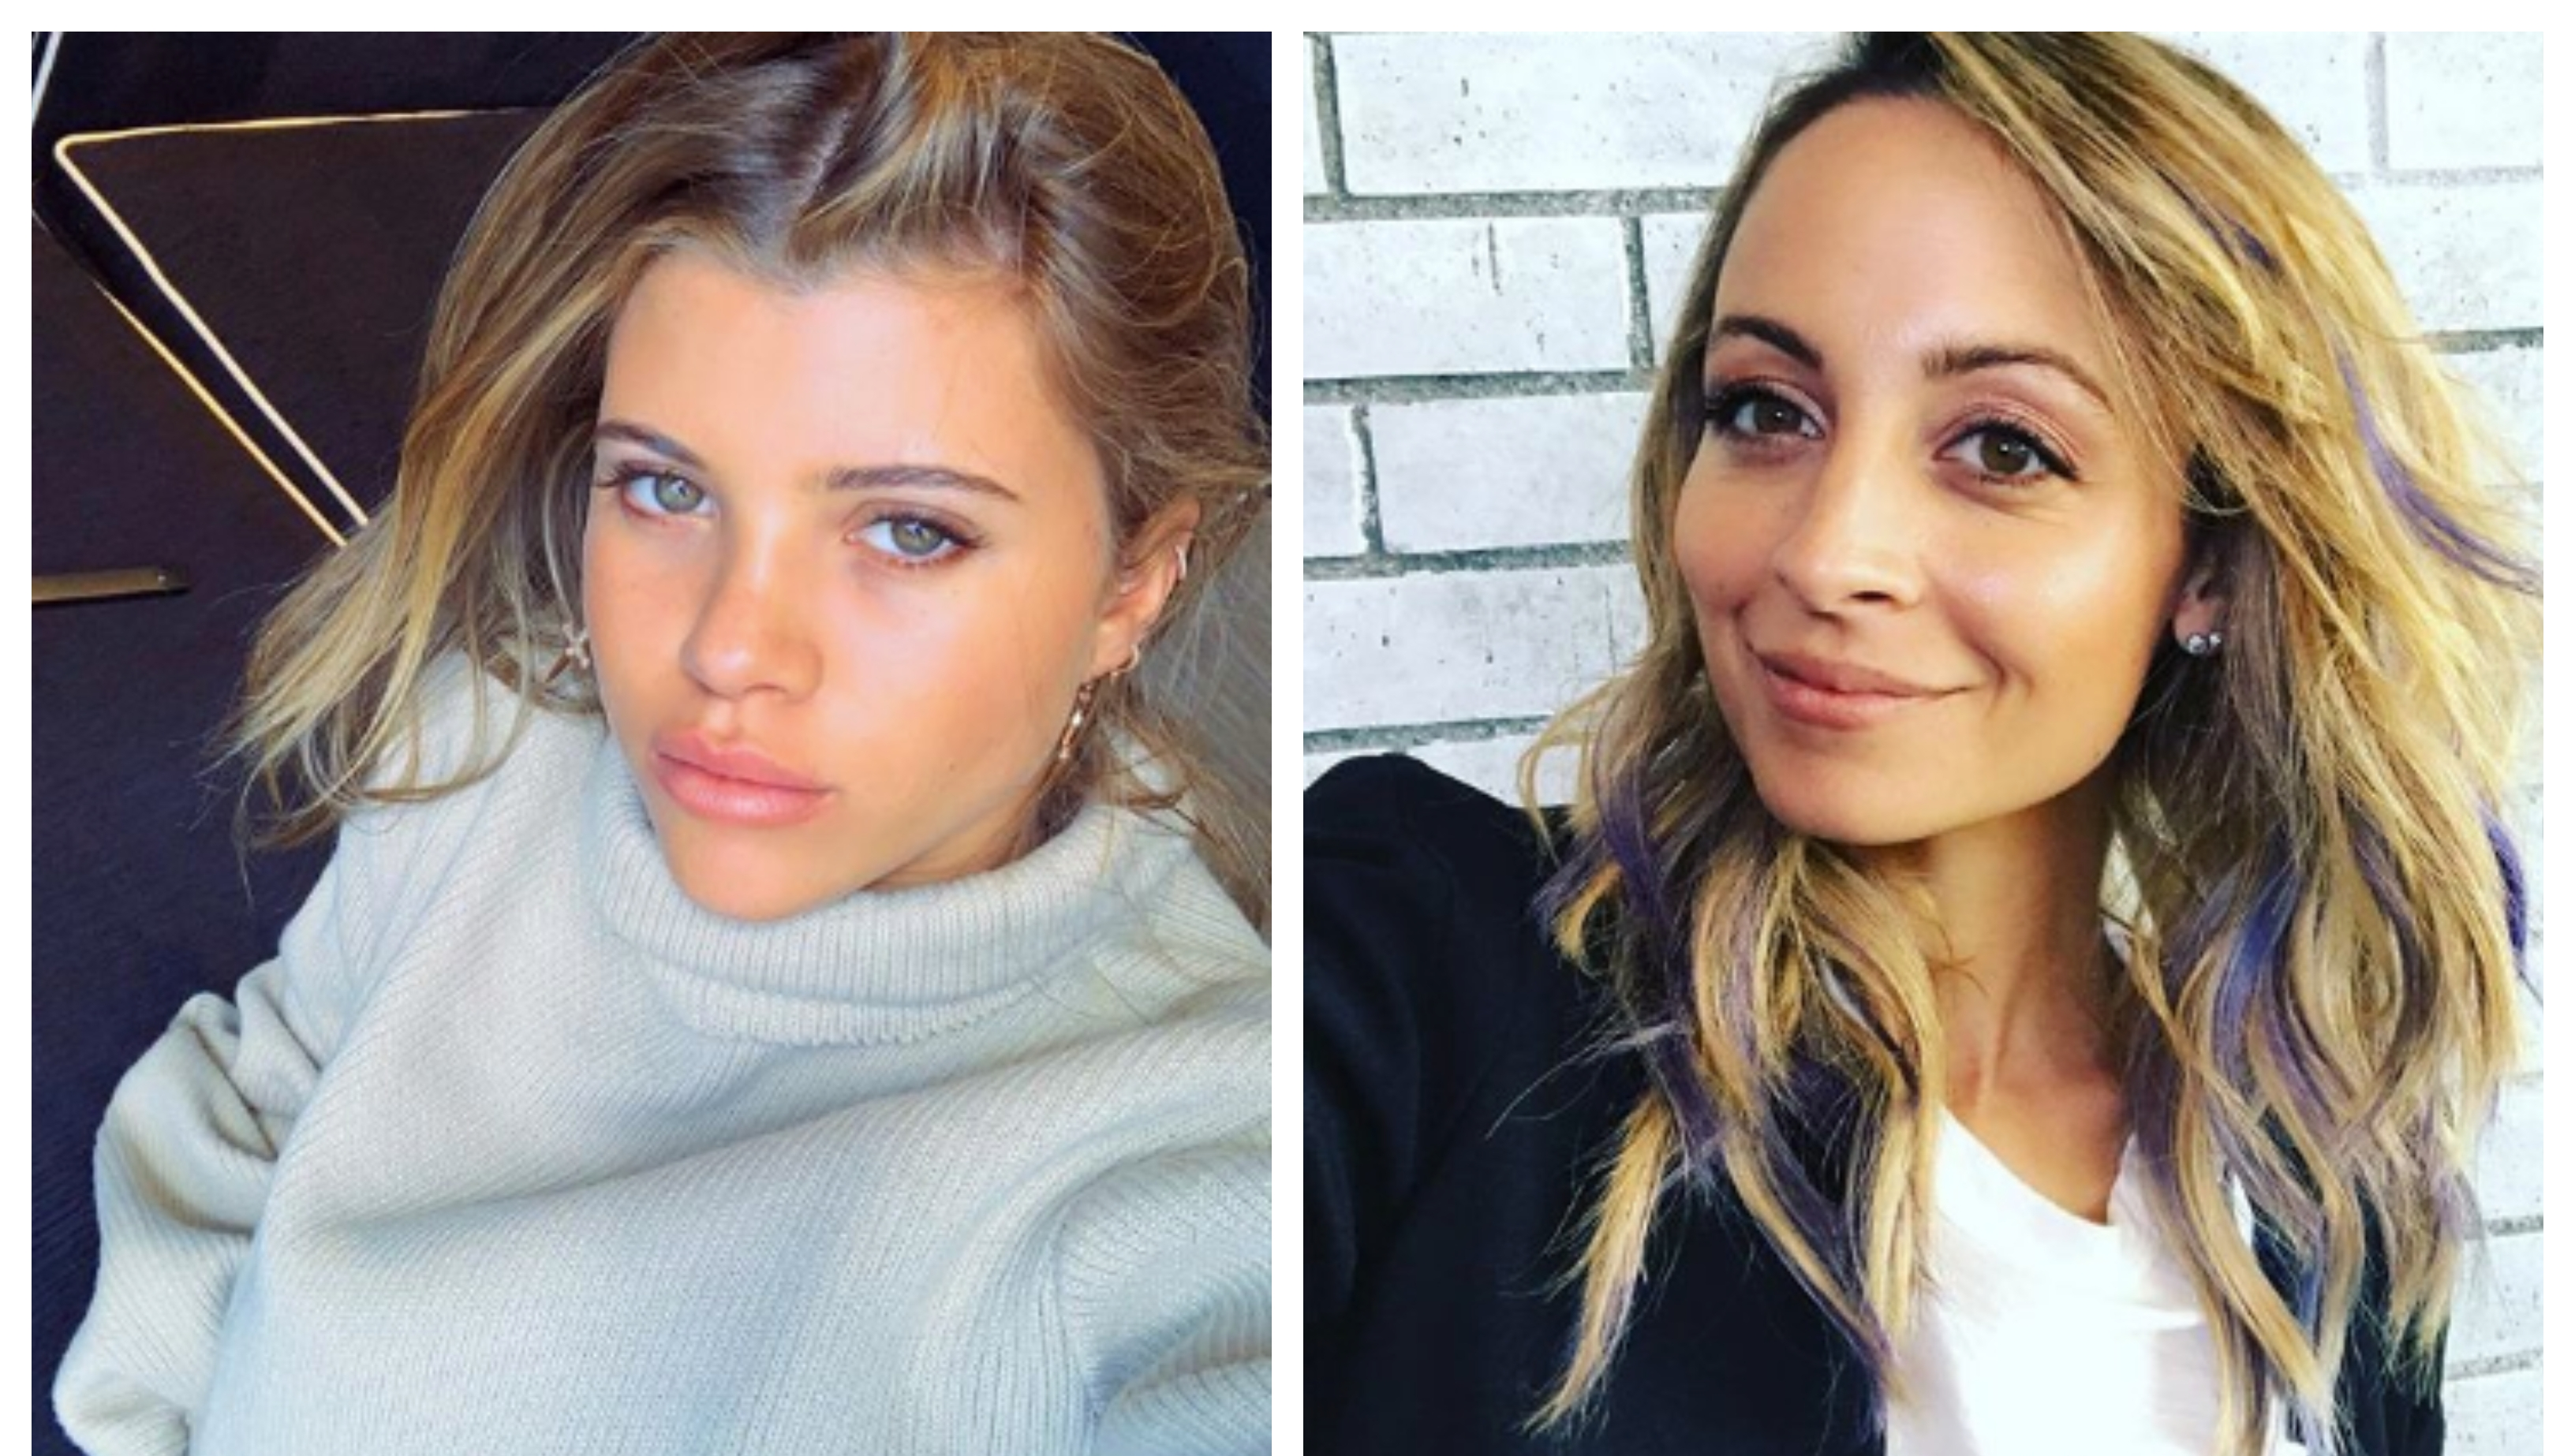 A split image of Sofia Richie and Nicole Richie.